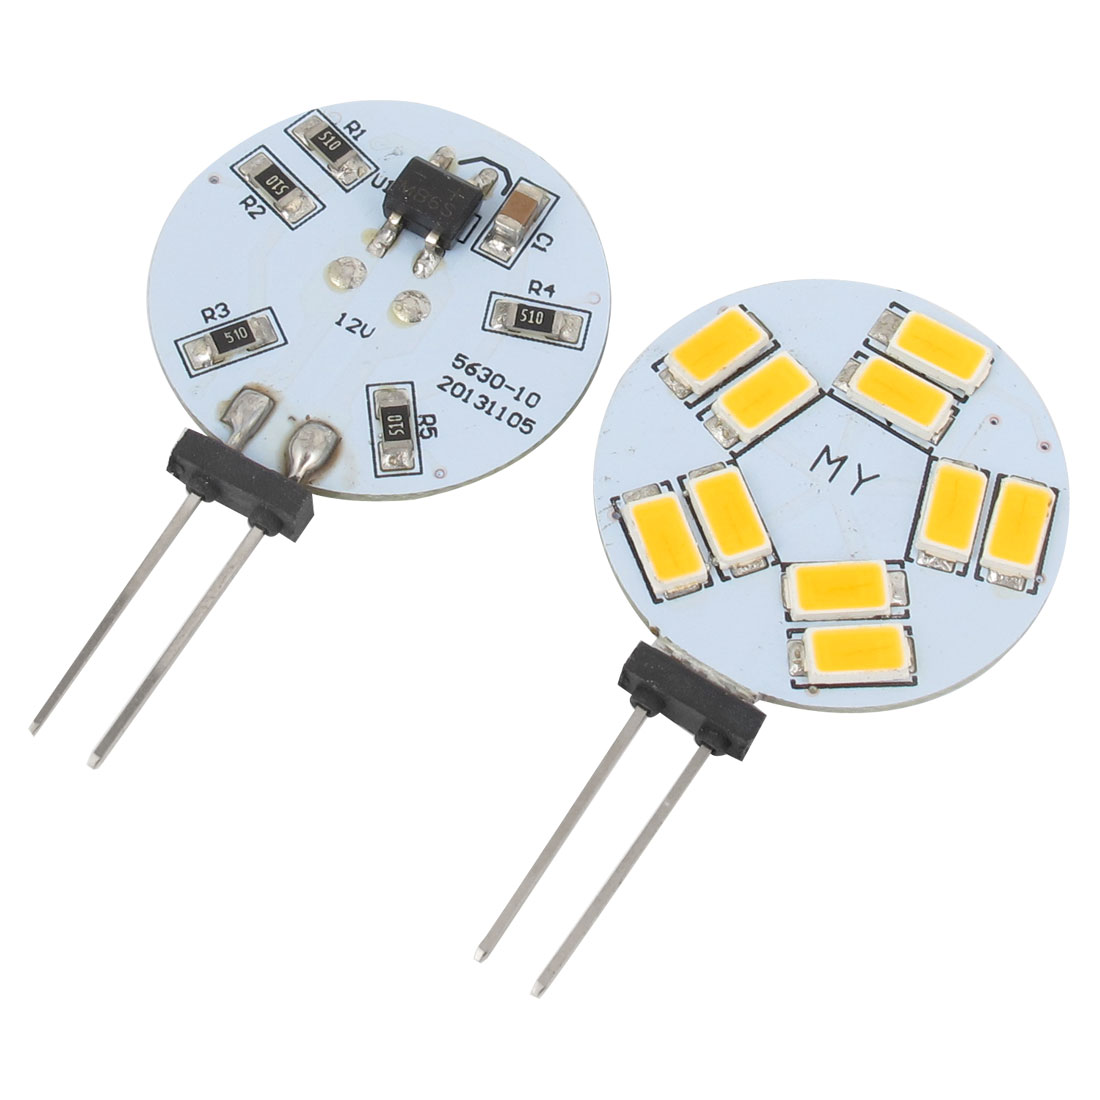 2 Pcs Side Pin G4 Warm White 5630 SMD 10-LED Bulb Dashboard Light for Car Internal